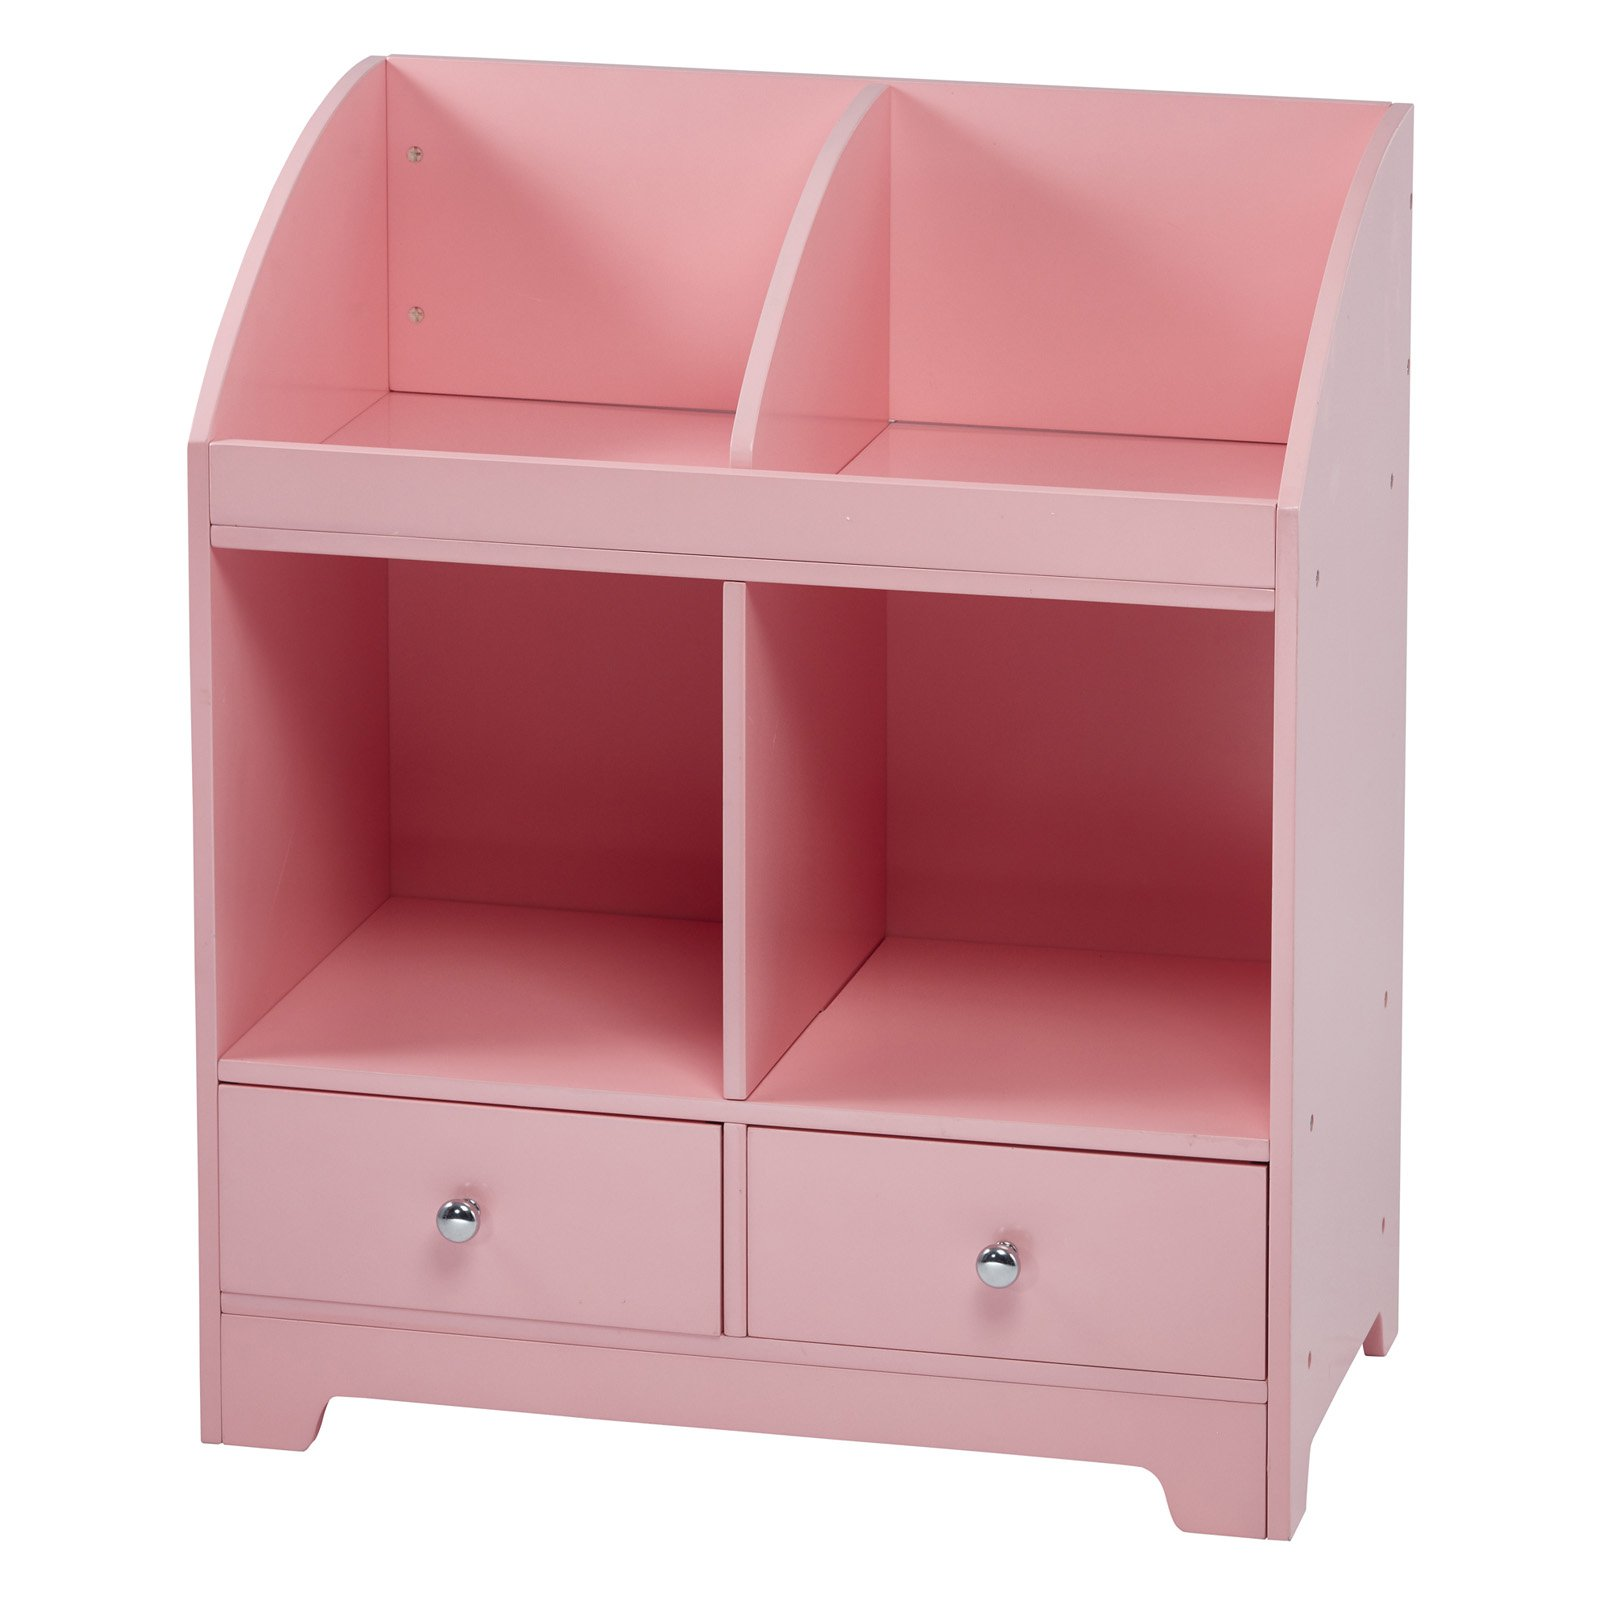 Teamson Kids - Little Princess Cindy Cubby Storage - Pink